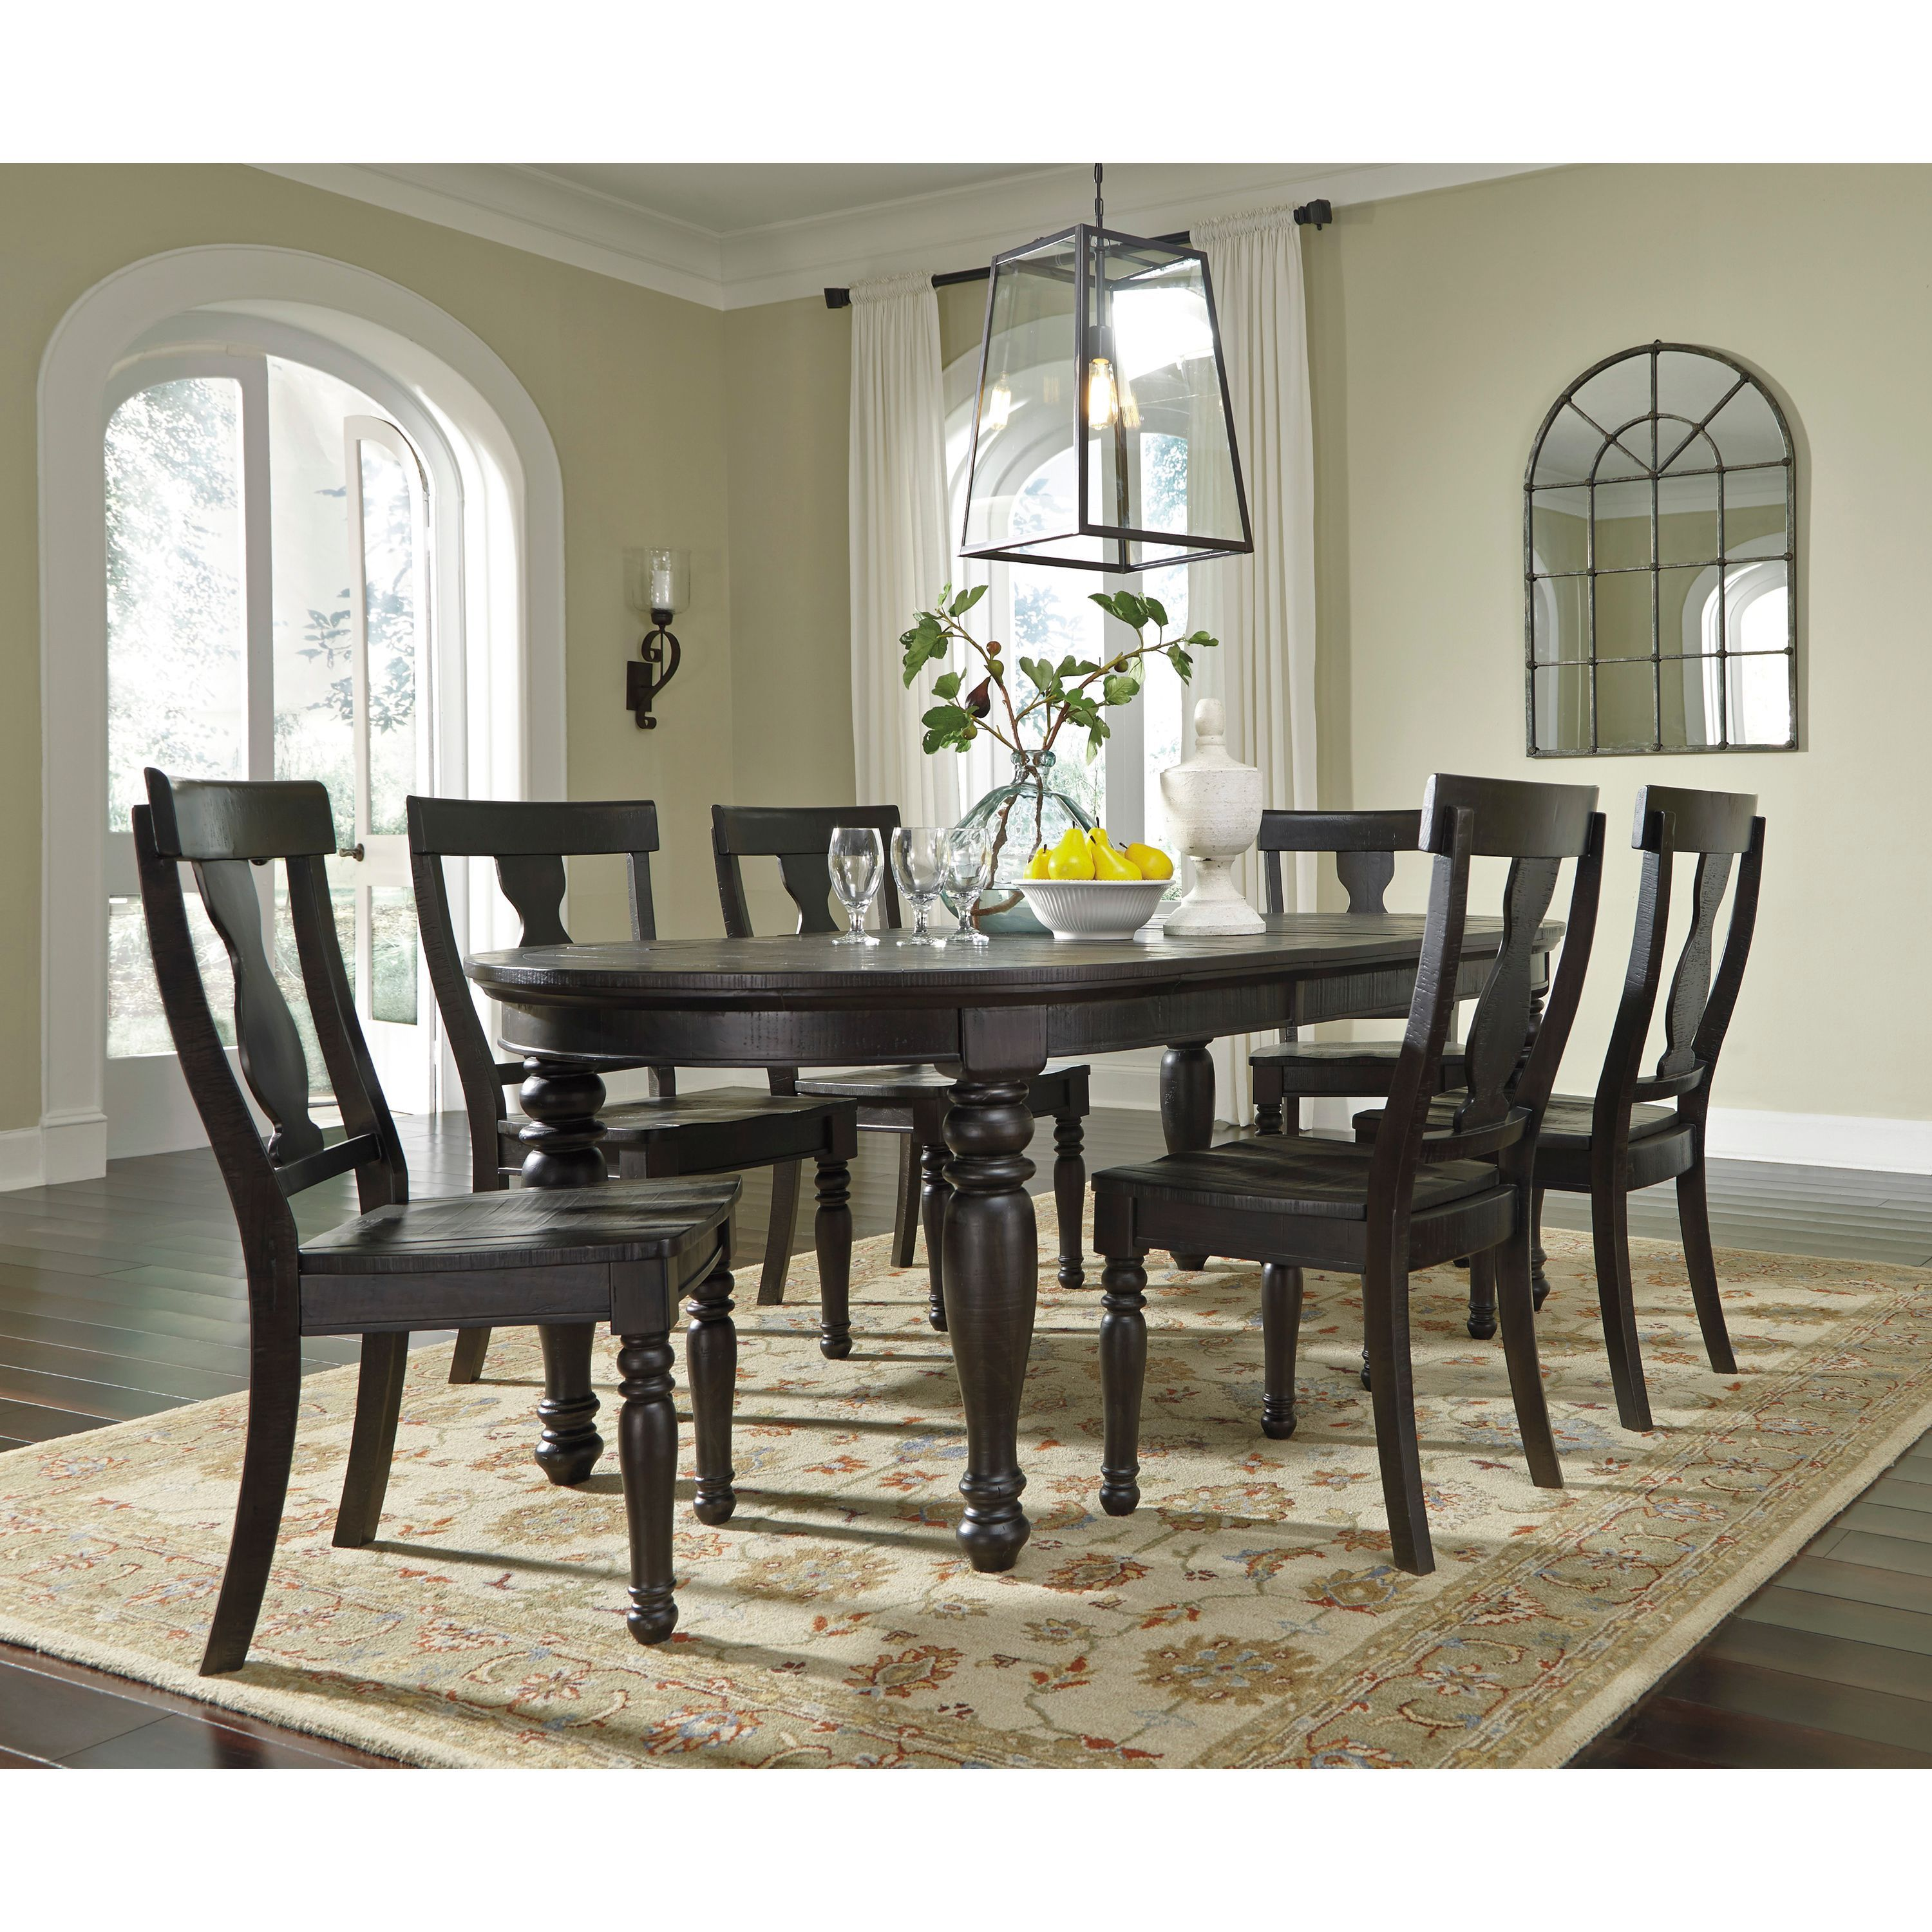 Signature Design by Ashley Sharlowe Charcoal Large Dining Room ...